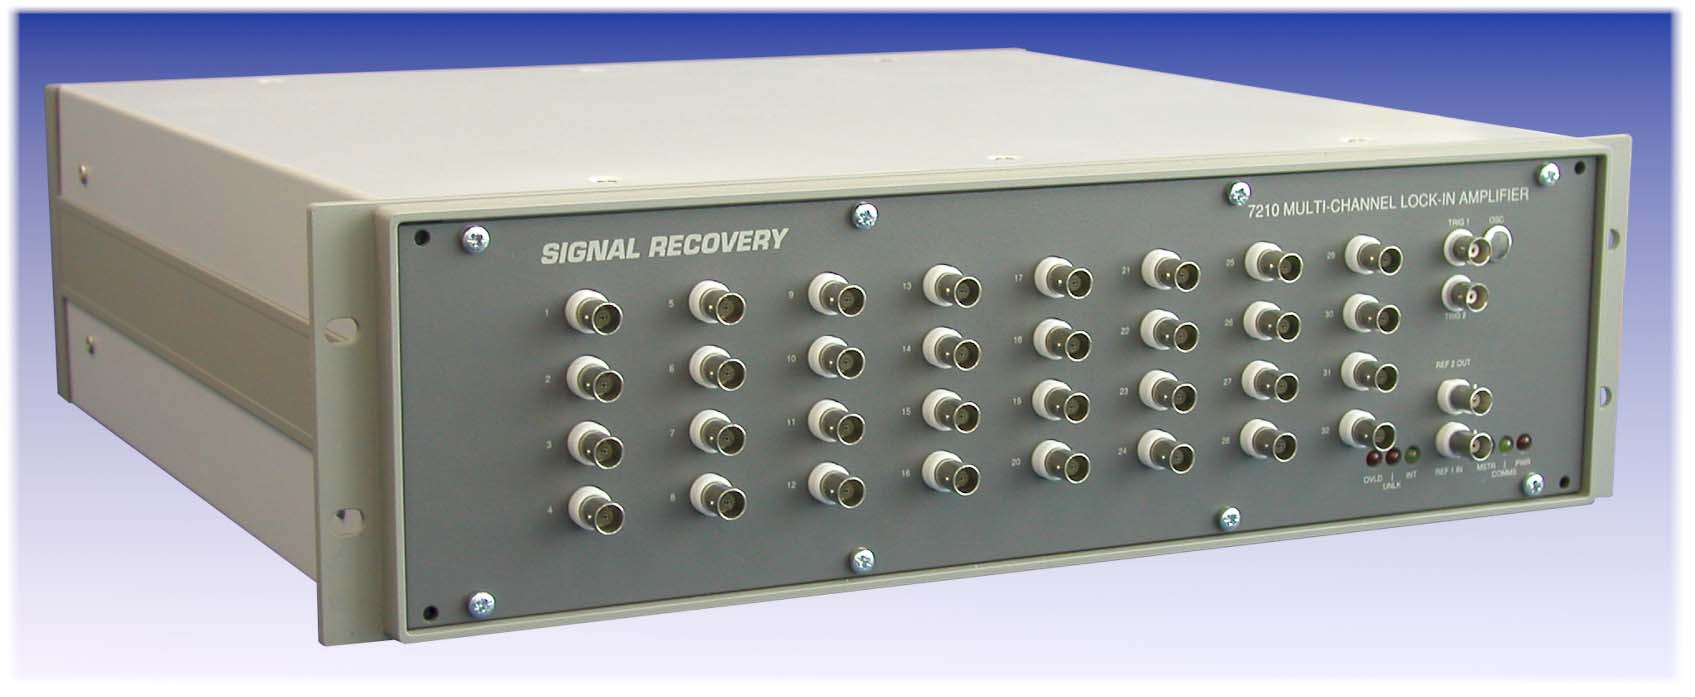 Model 7210 Multichannel DSP Lock-in amplifier